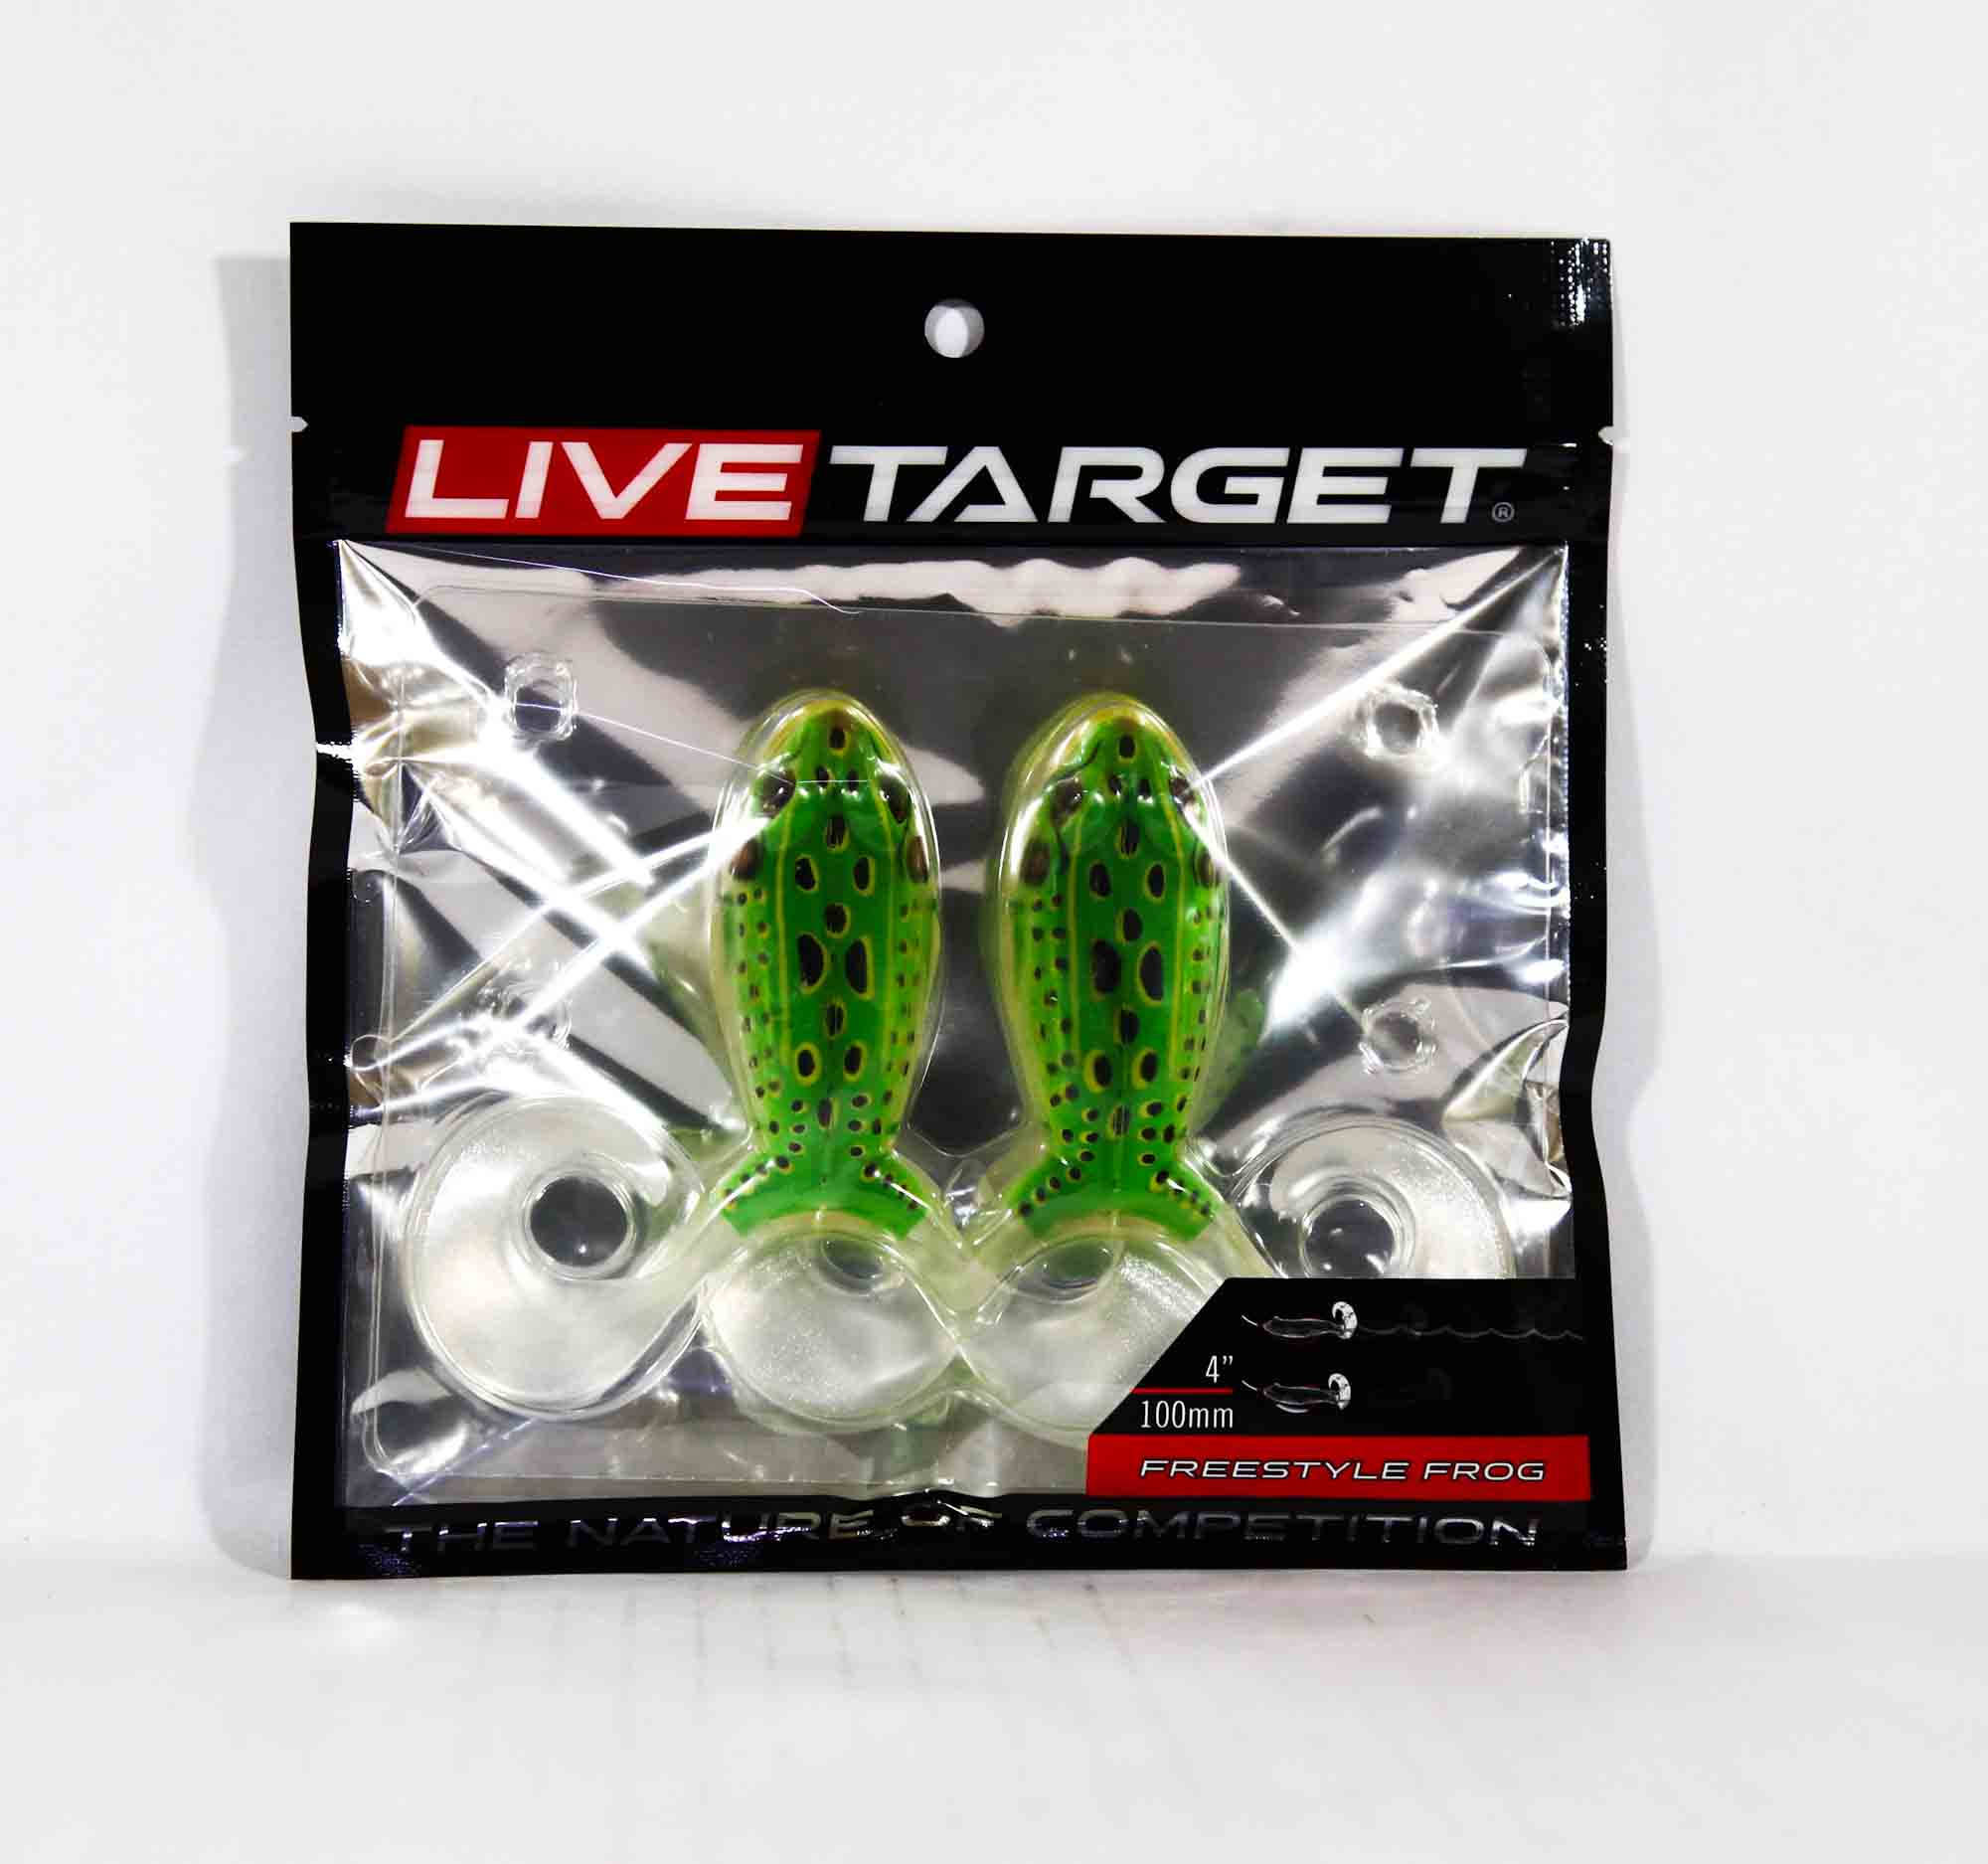 Live Target FSF100T512 Freestyle Frog 4 Inch Floroscent Green Yellow (3910)